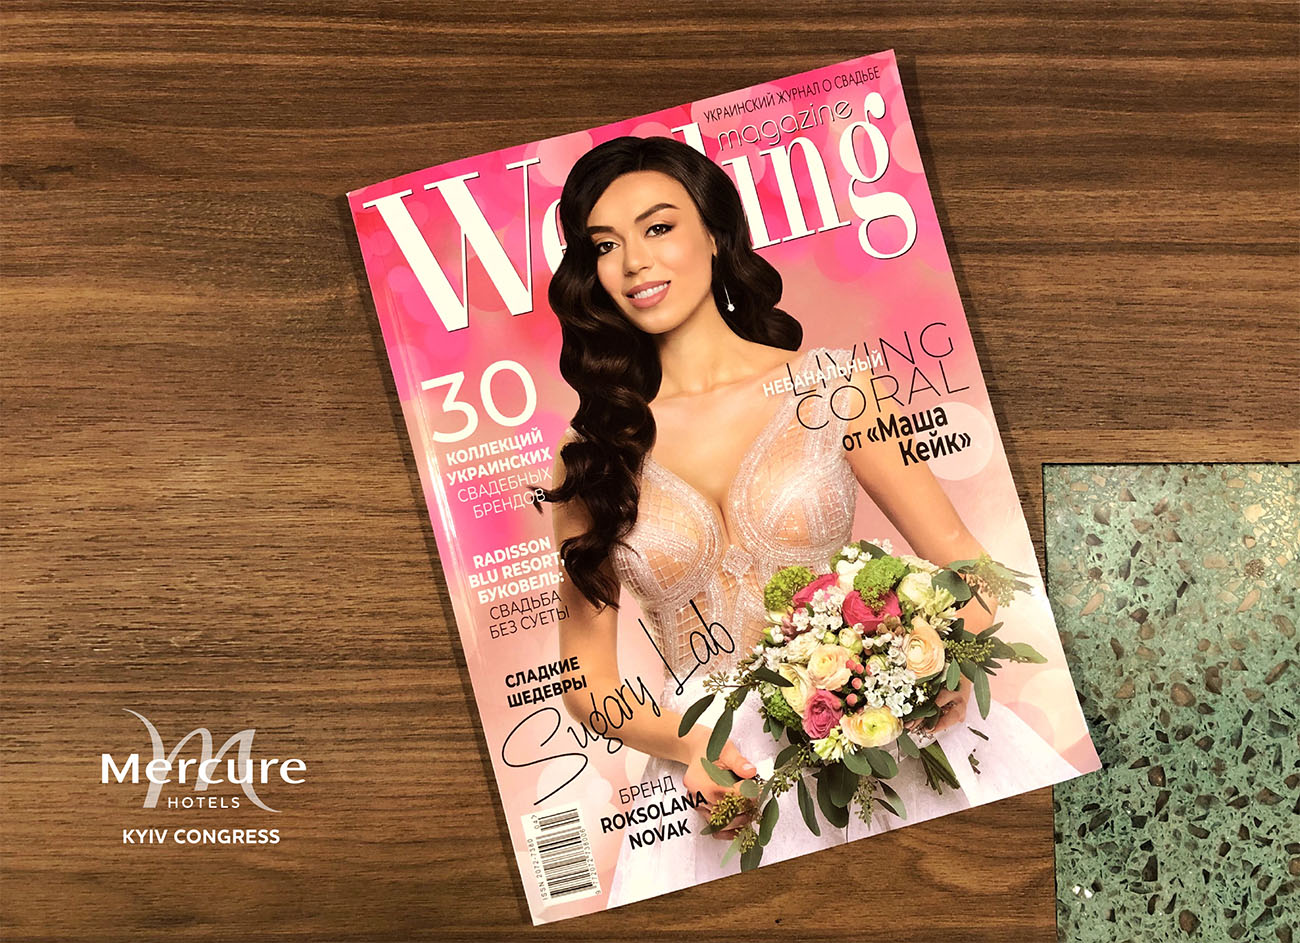 Wedding Magazine's latest edition: review of Mercure Kyiv Congress